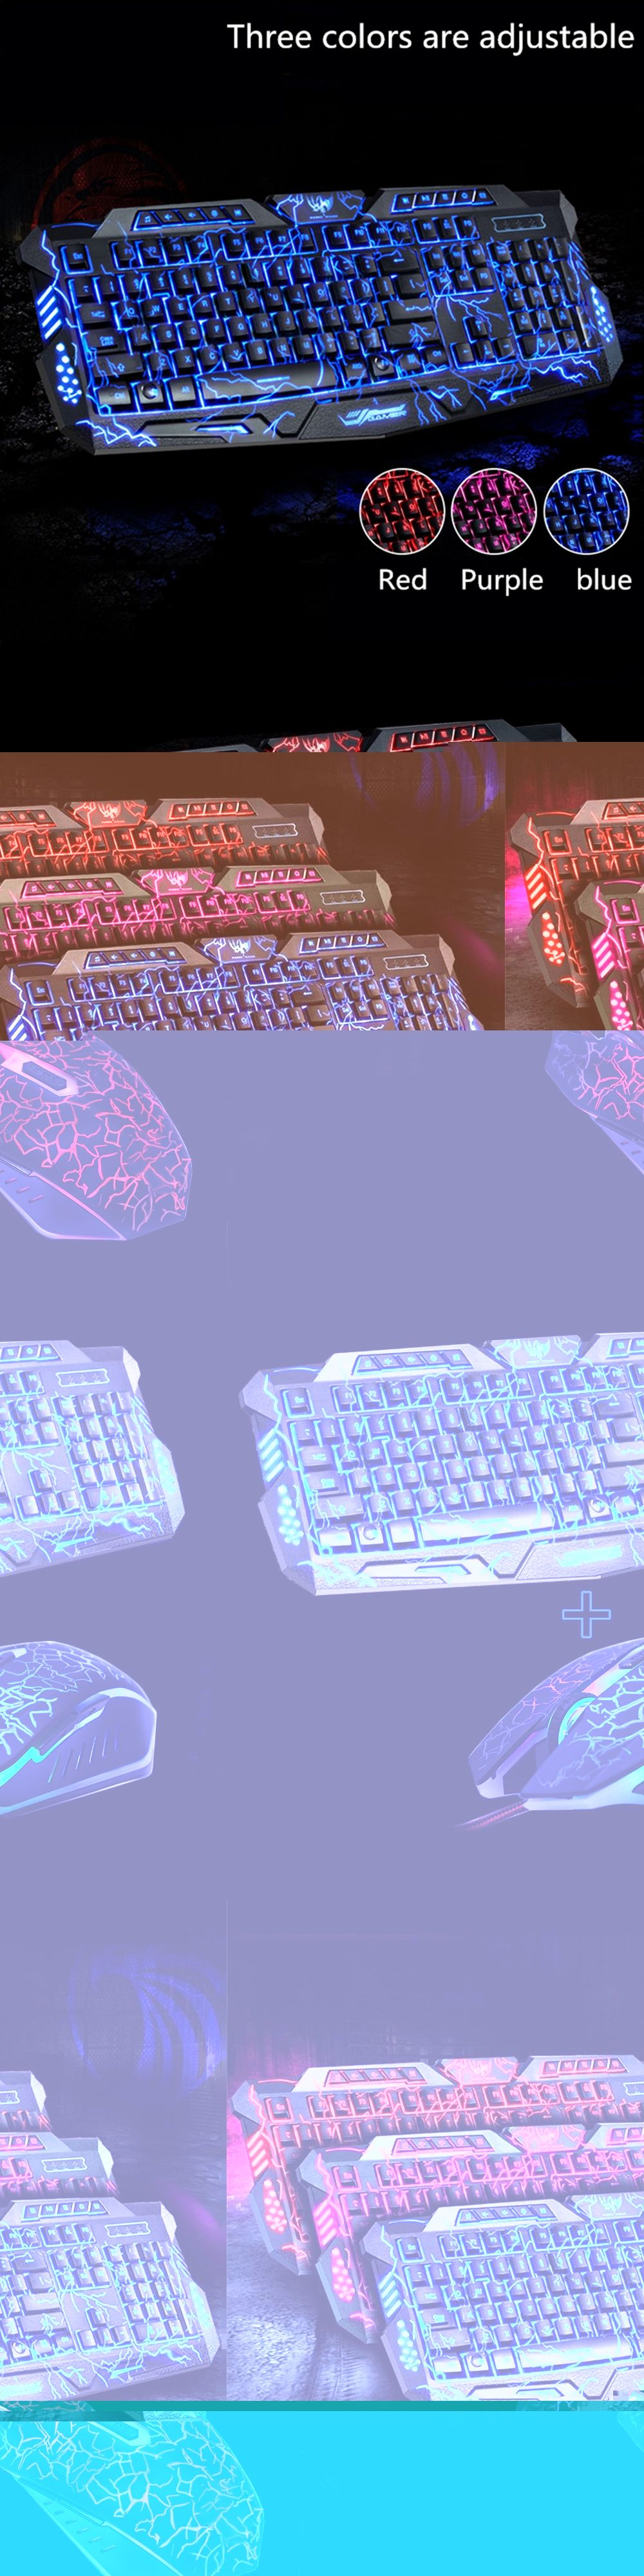 31abfaa7a4d M200 Purple/Blue/Red LED Breathing Backlight Pro Gaming Keyboard Mouse  Combos USB Wired